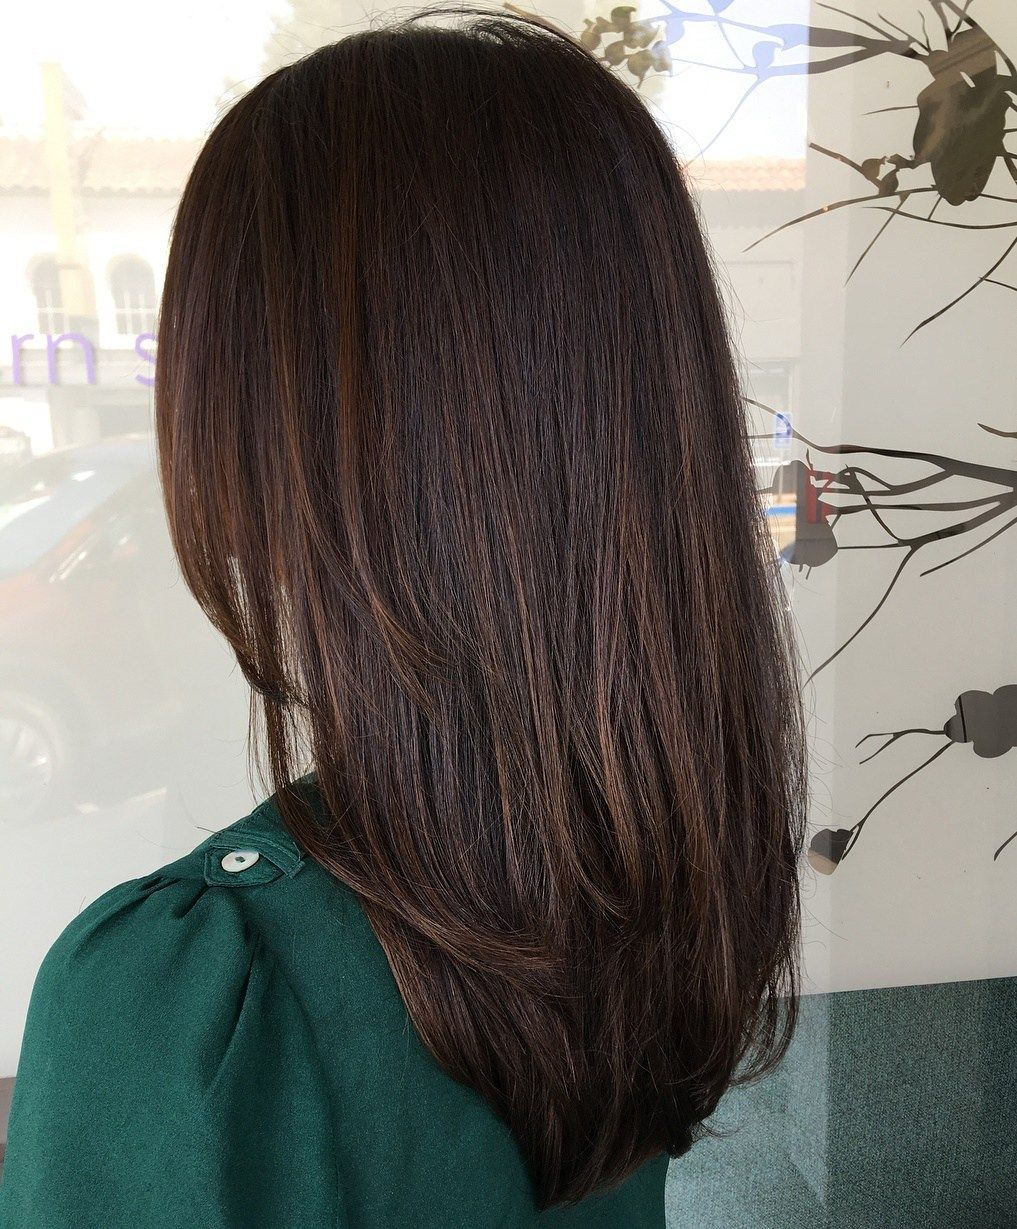 Straight Dark Brown Highlighted Hairstyle Hair Highlights Hair Styles Brown Blonde Hair